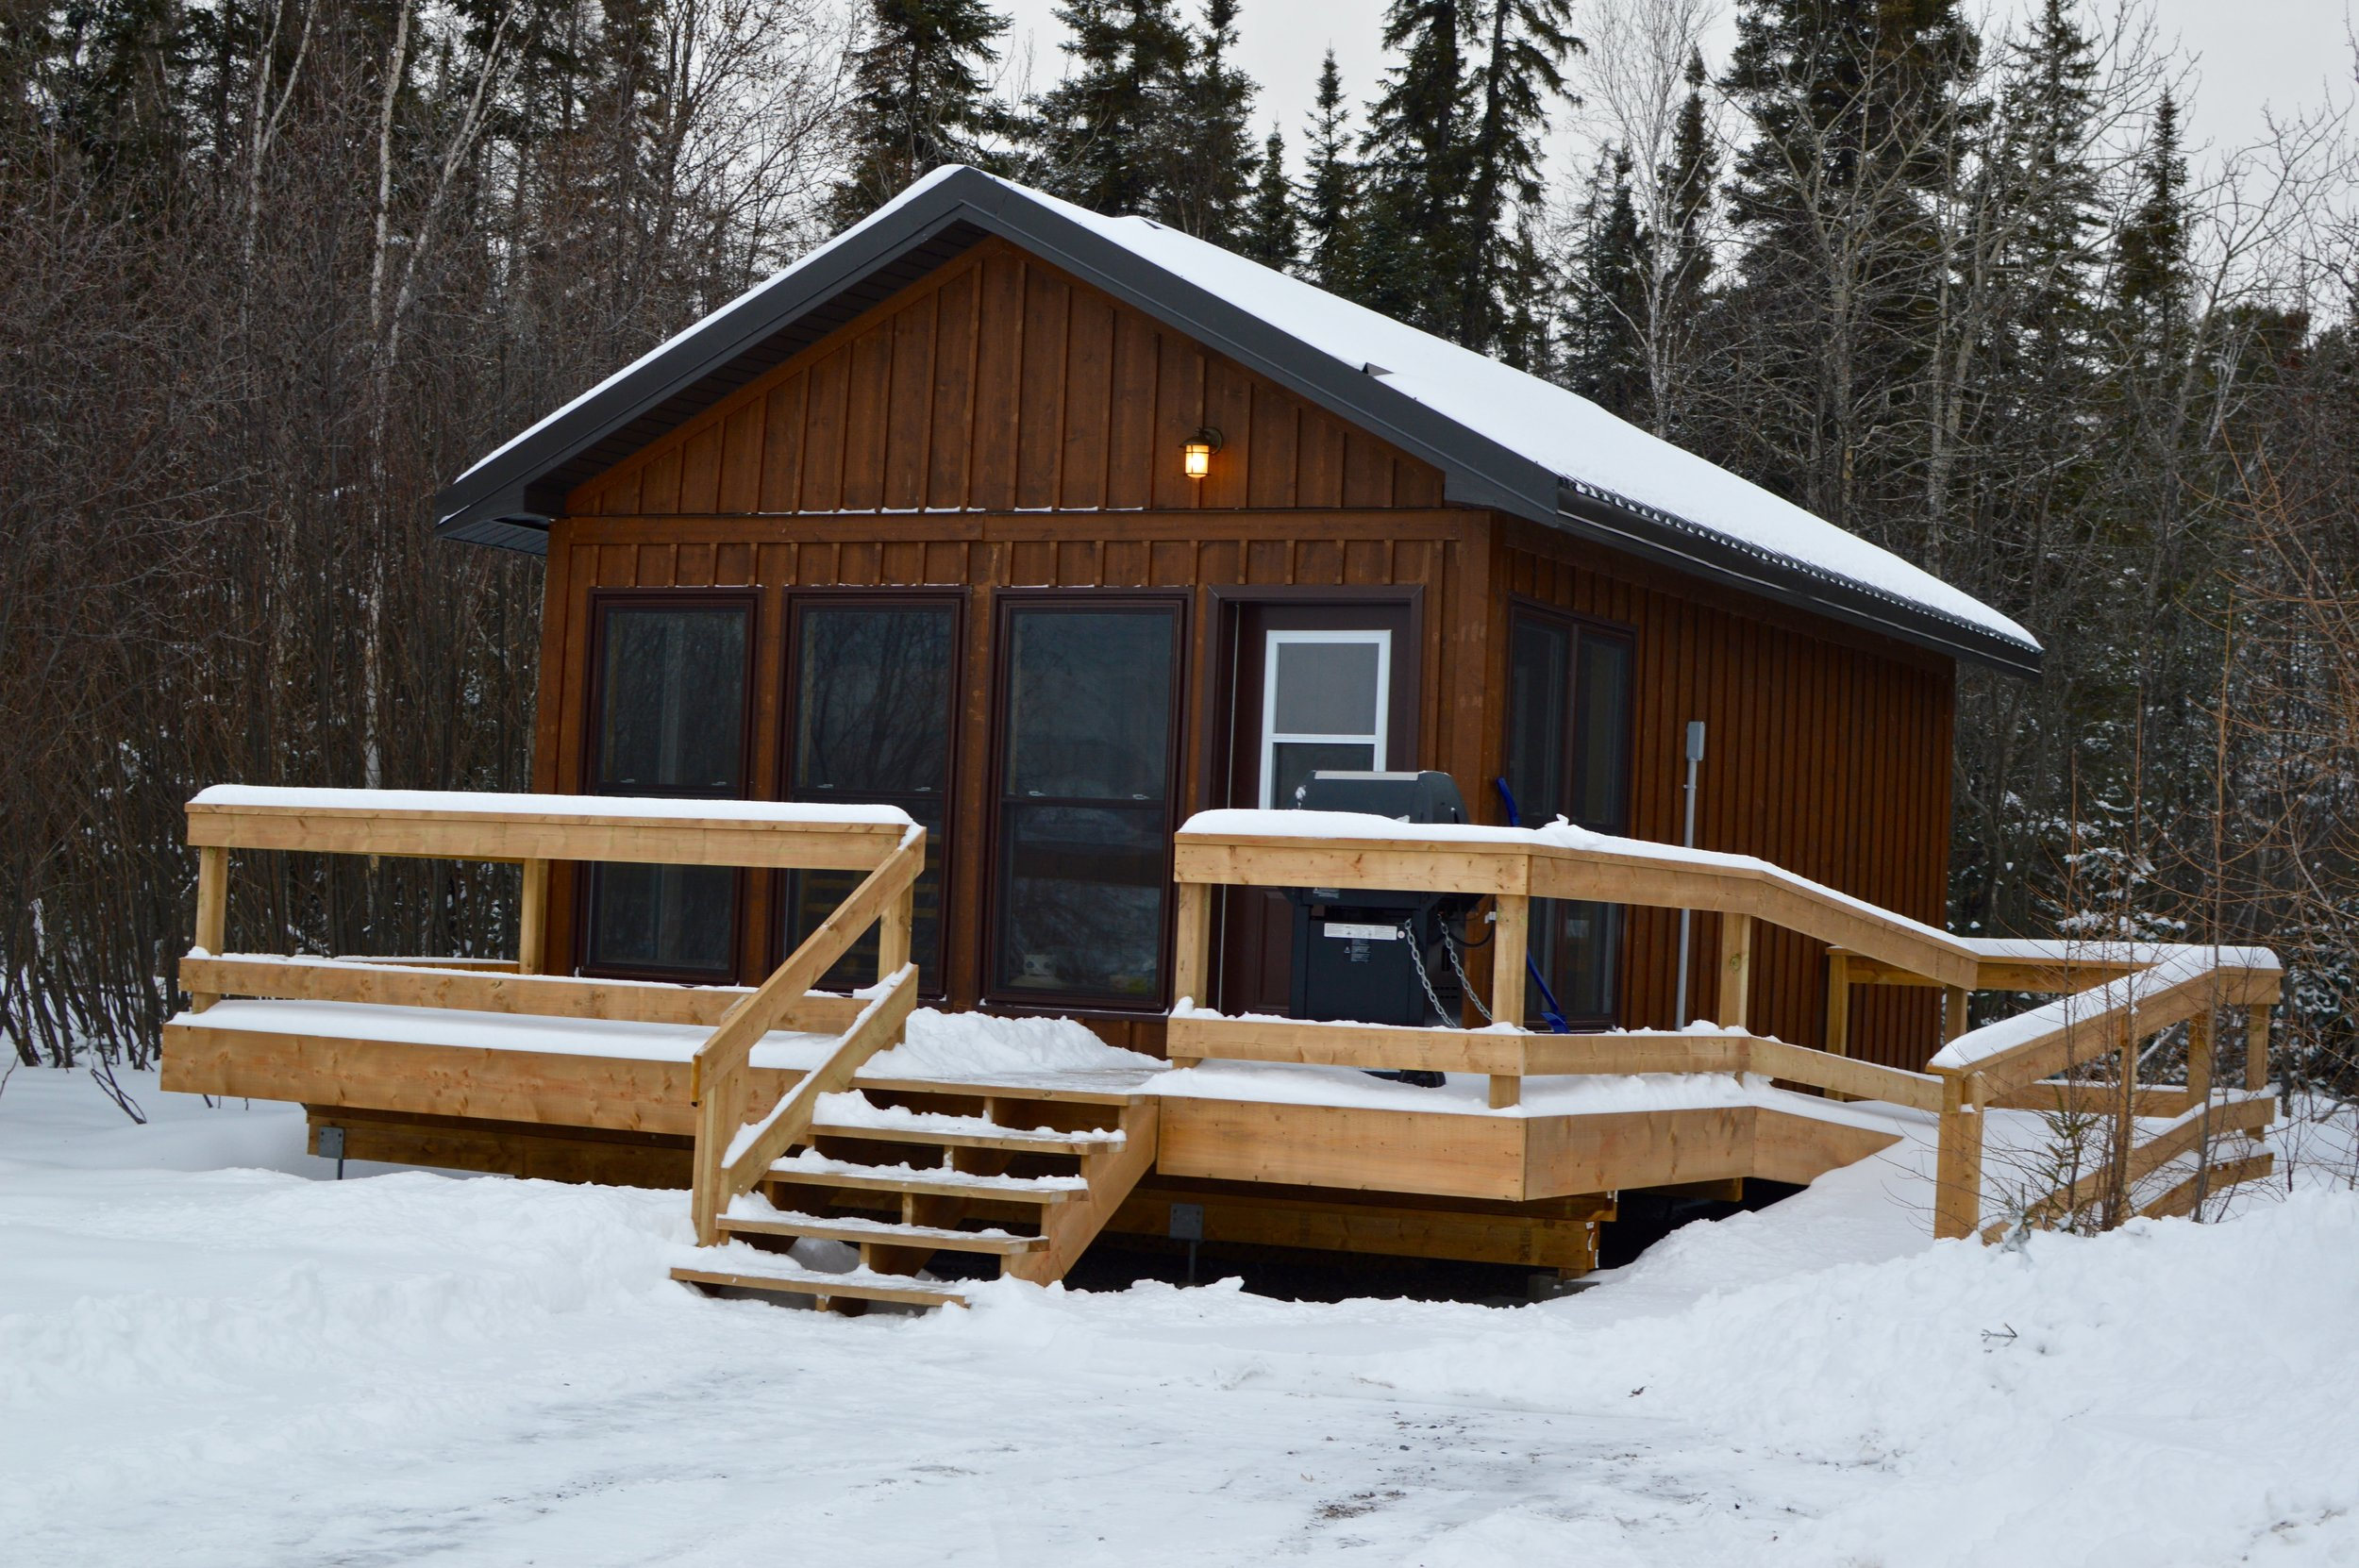 Whether it's a cabin or a winter yurt, Ontario camping reservations aren't hard to make!